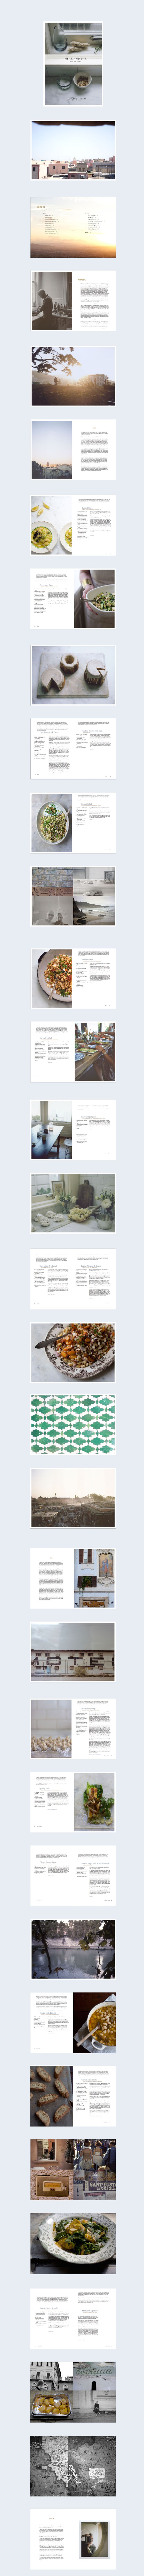 Writing a Cookbook Proposal (plus more links at the end of the post re: writing a cookbook)